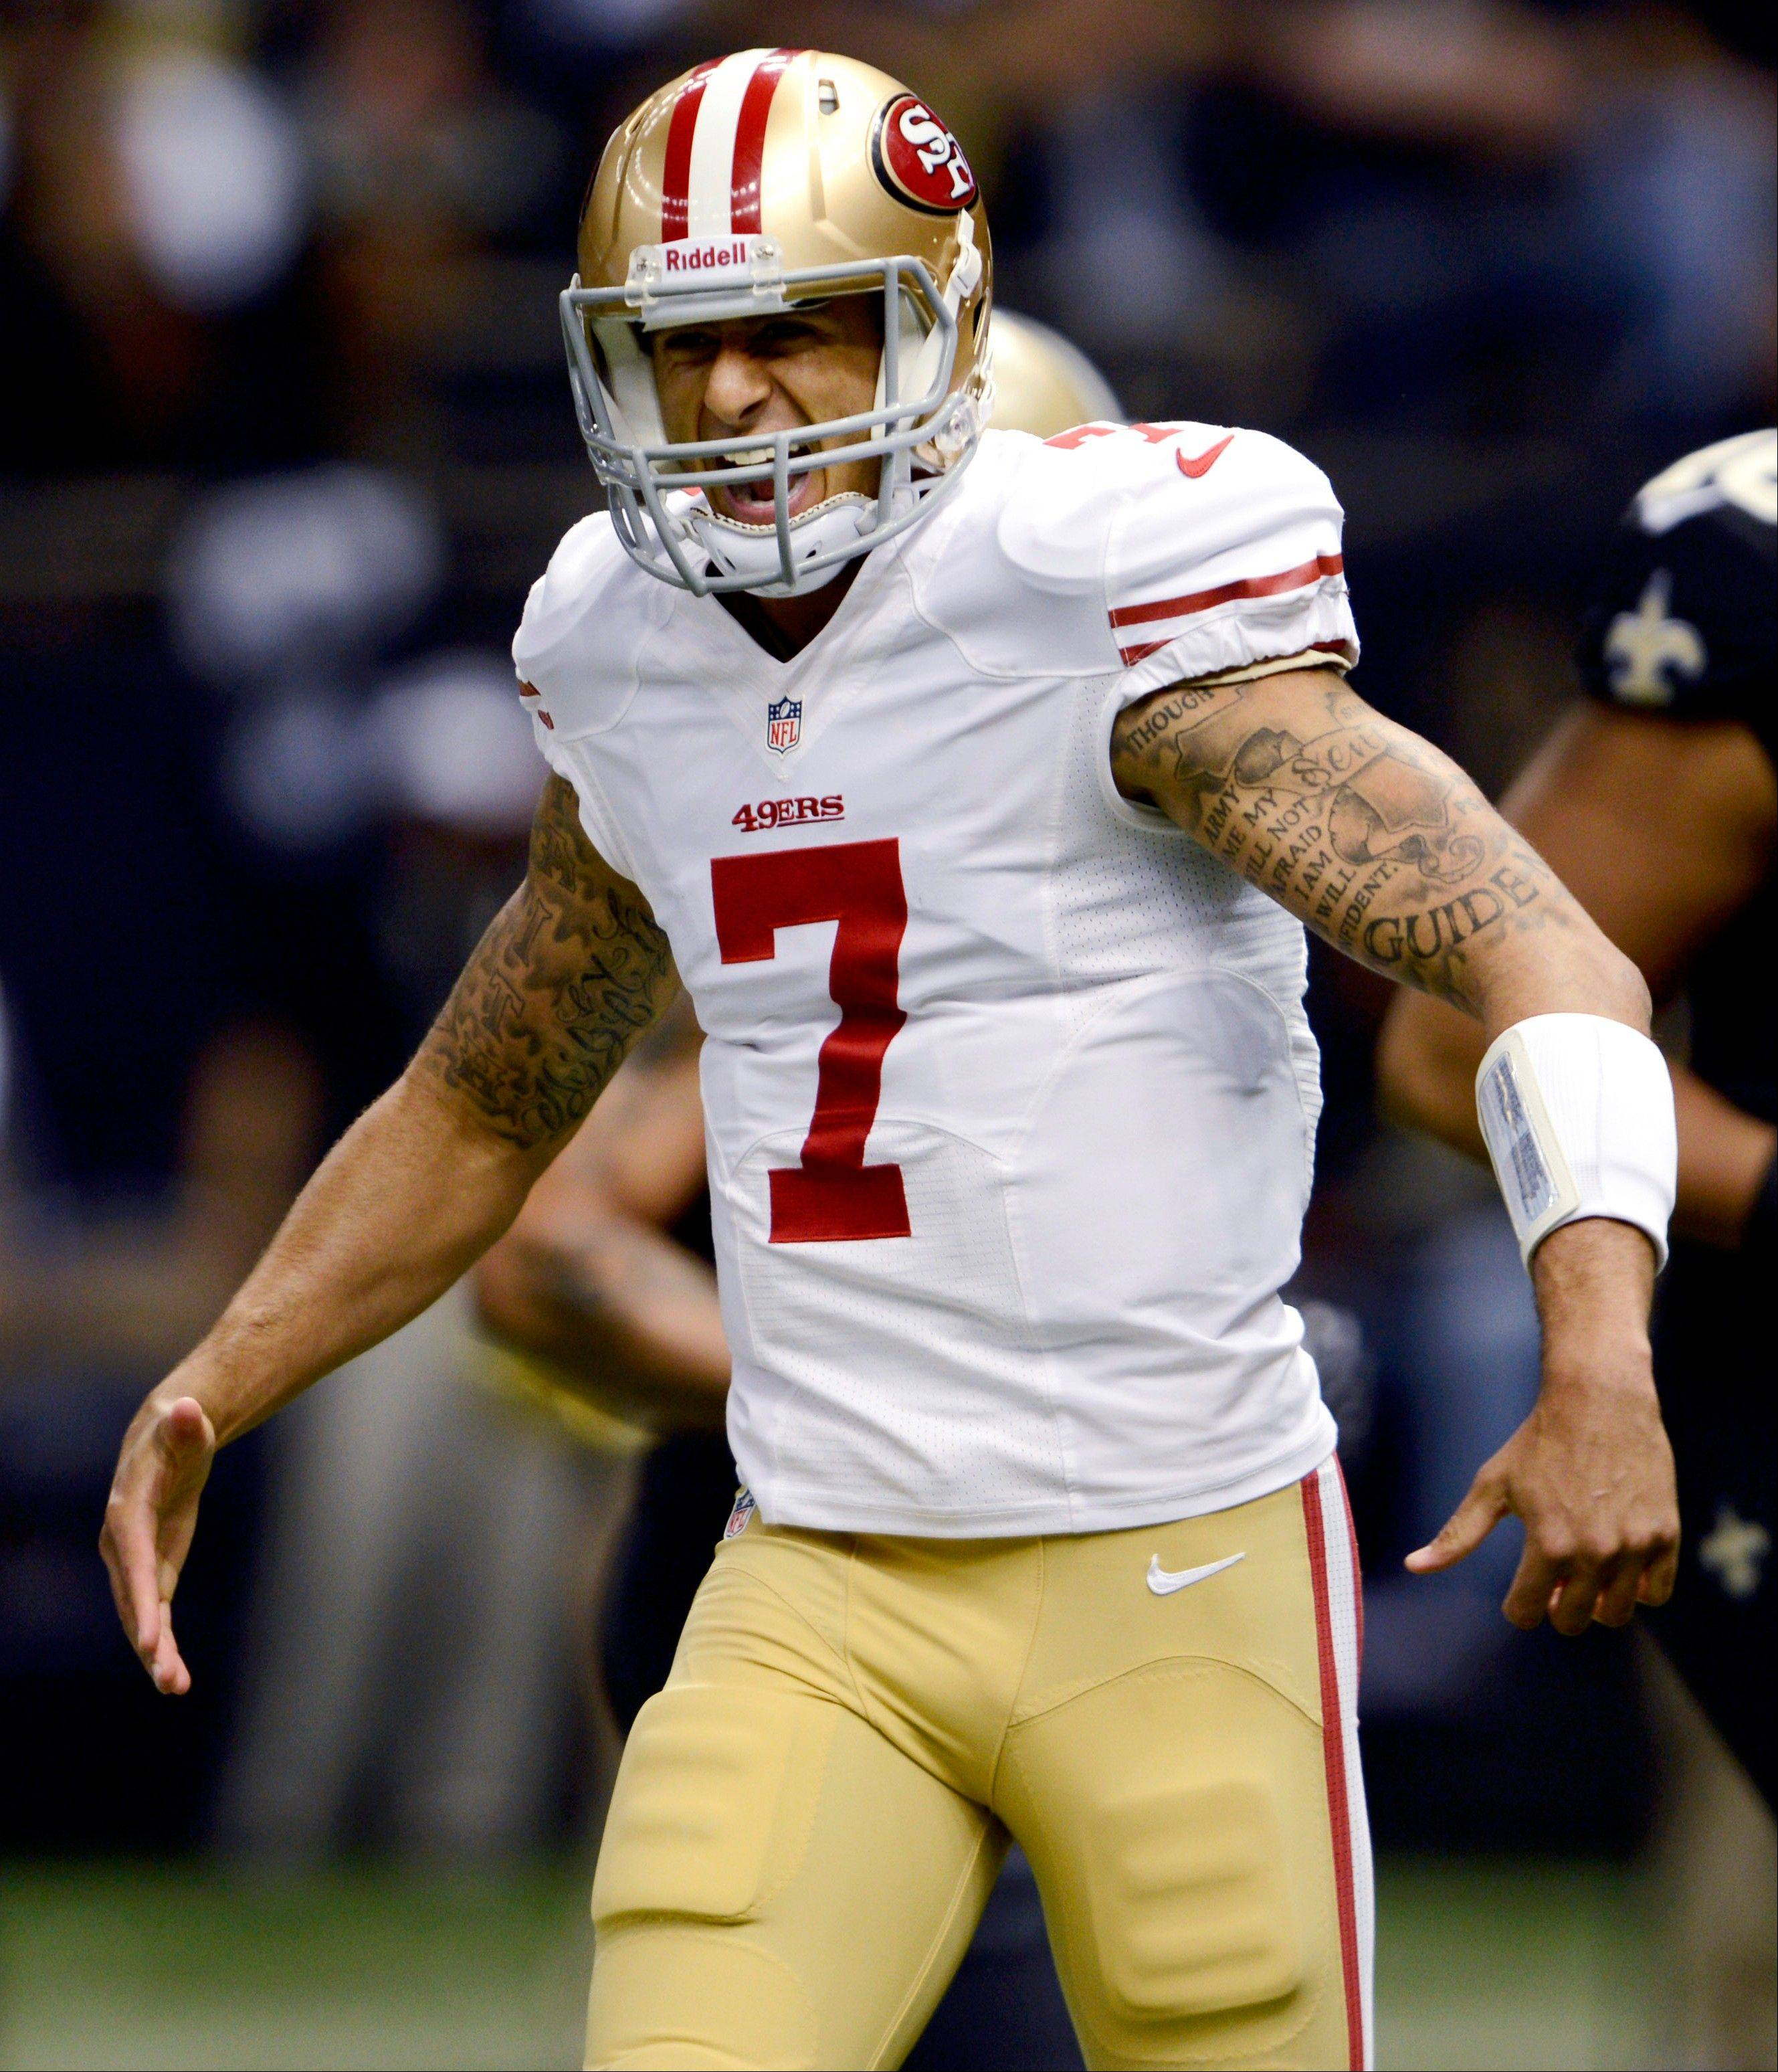 San Francisco 49ers quarterback Colin Kaepernick has the support of his head coach, Jim Harbaugh, but Mike North believes Alex Smith should start for the Niners.